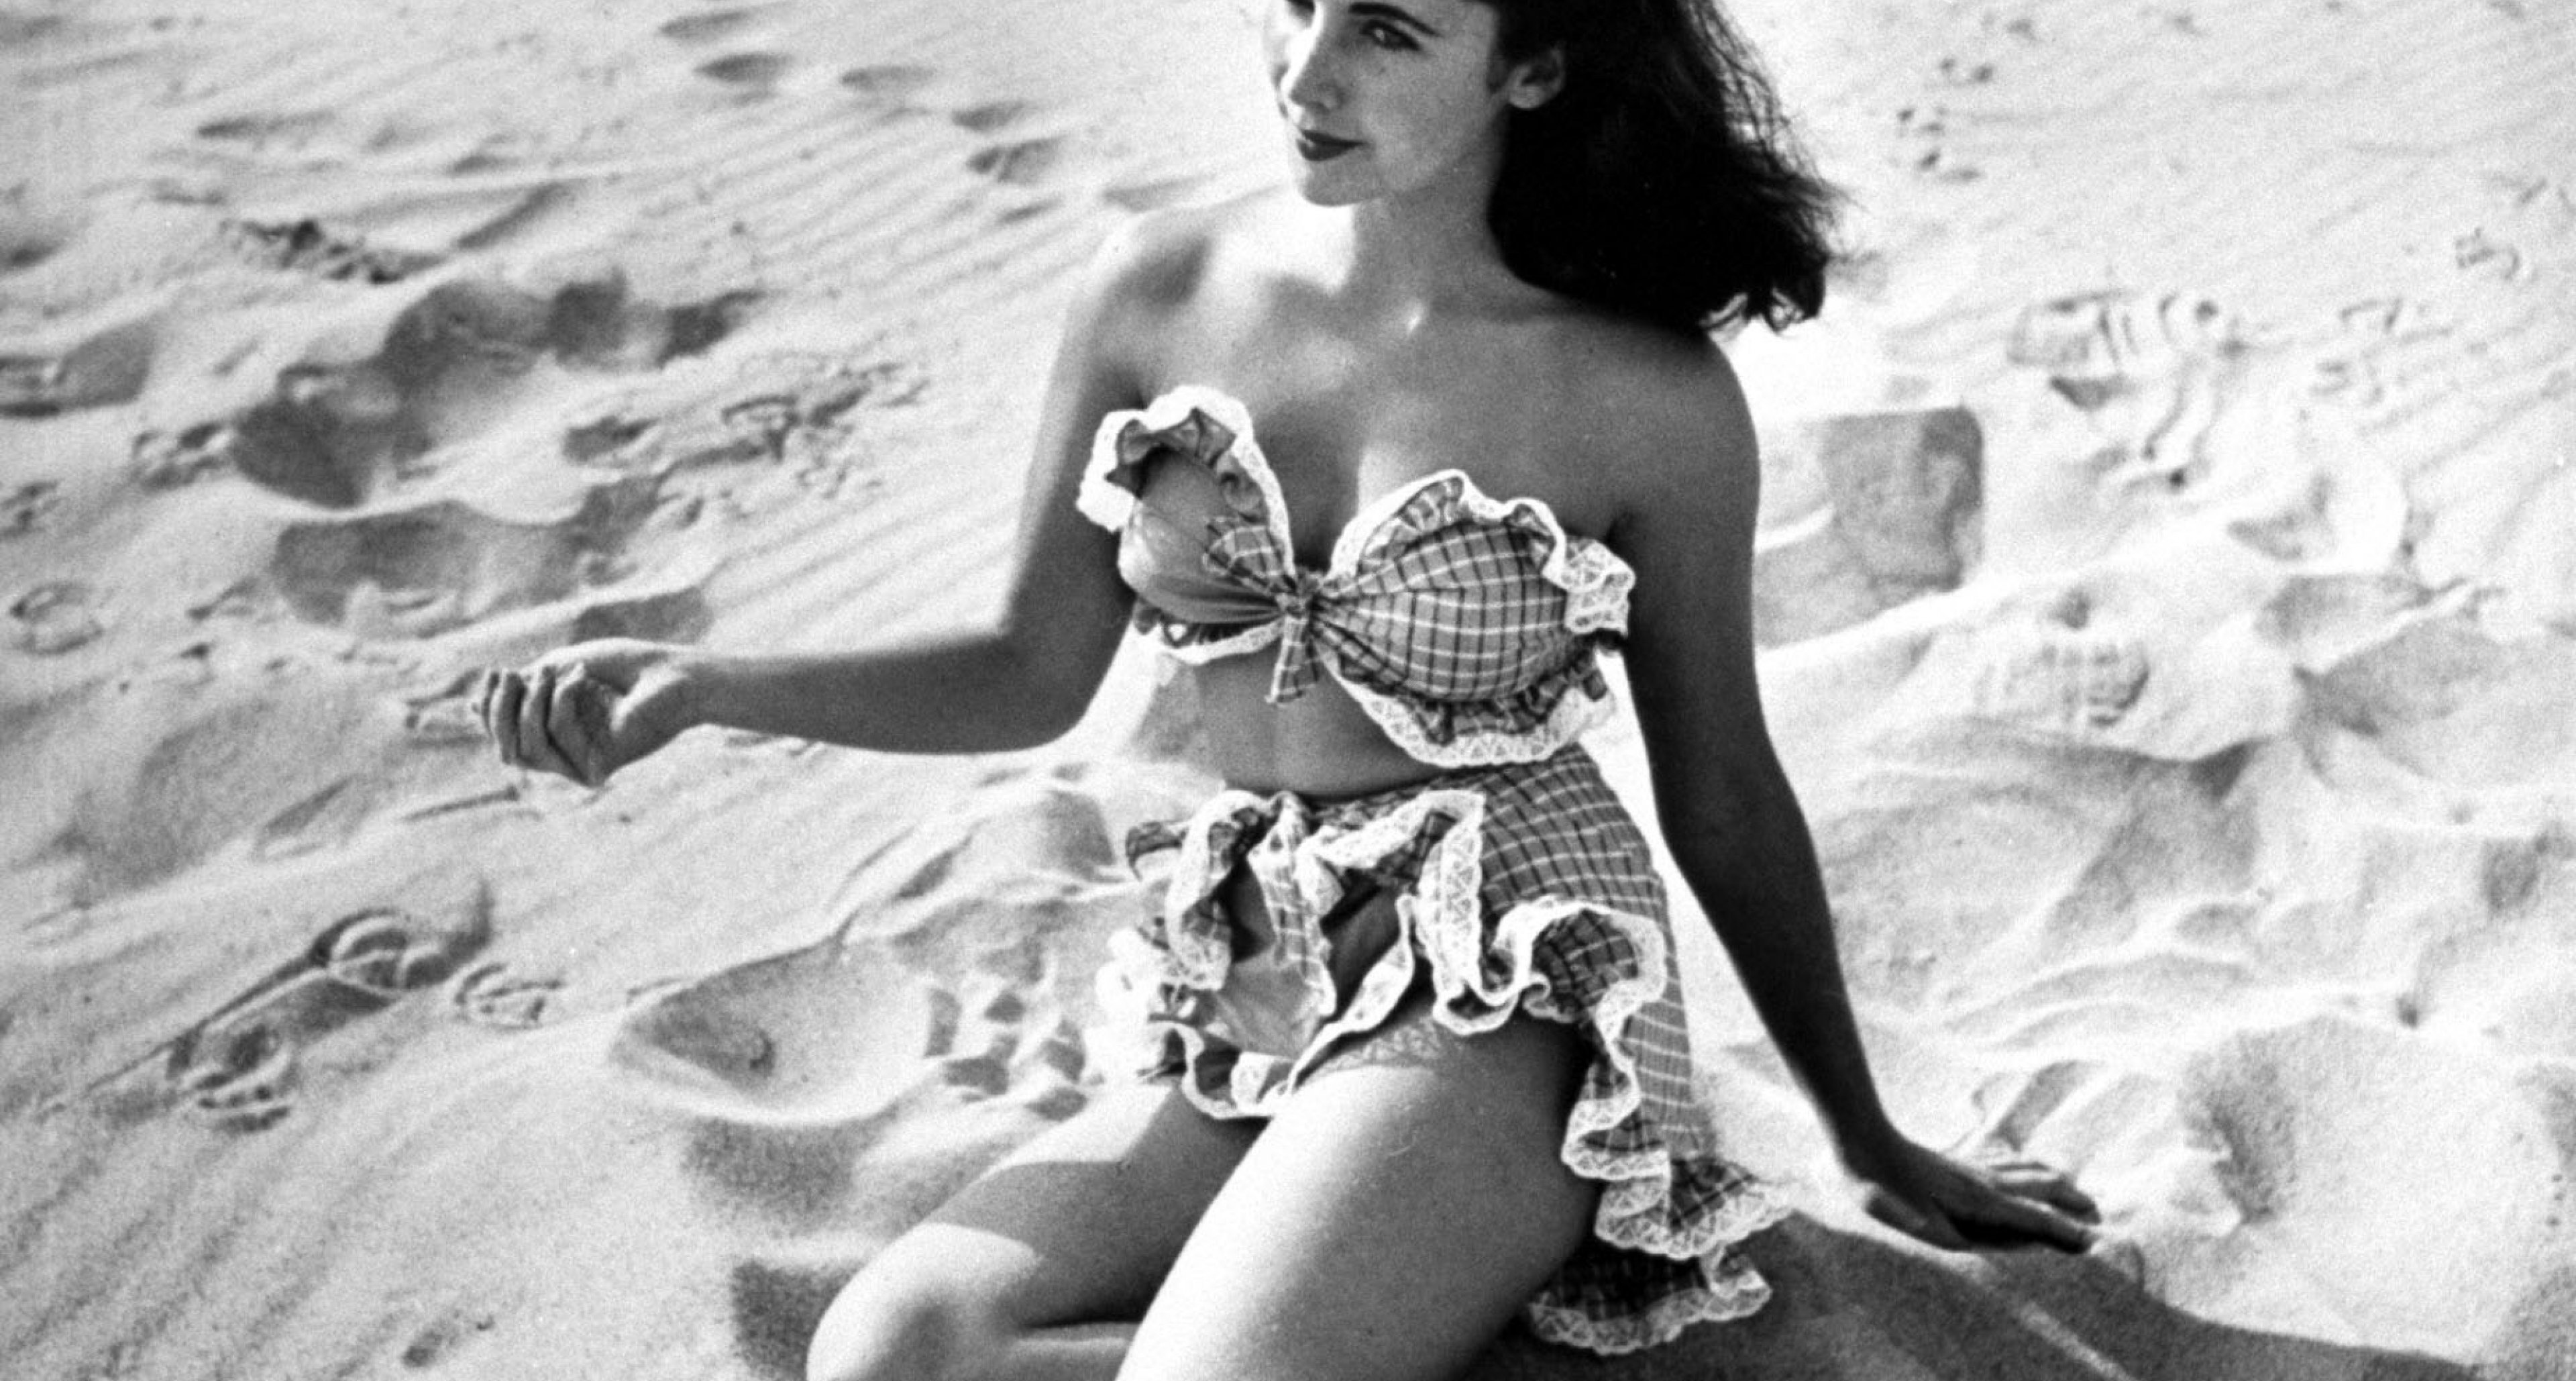 Actress Elizabeth Taylor, 15, showing off, frilly two-piece bathing suit on beach in 1947.